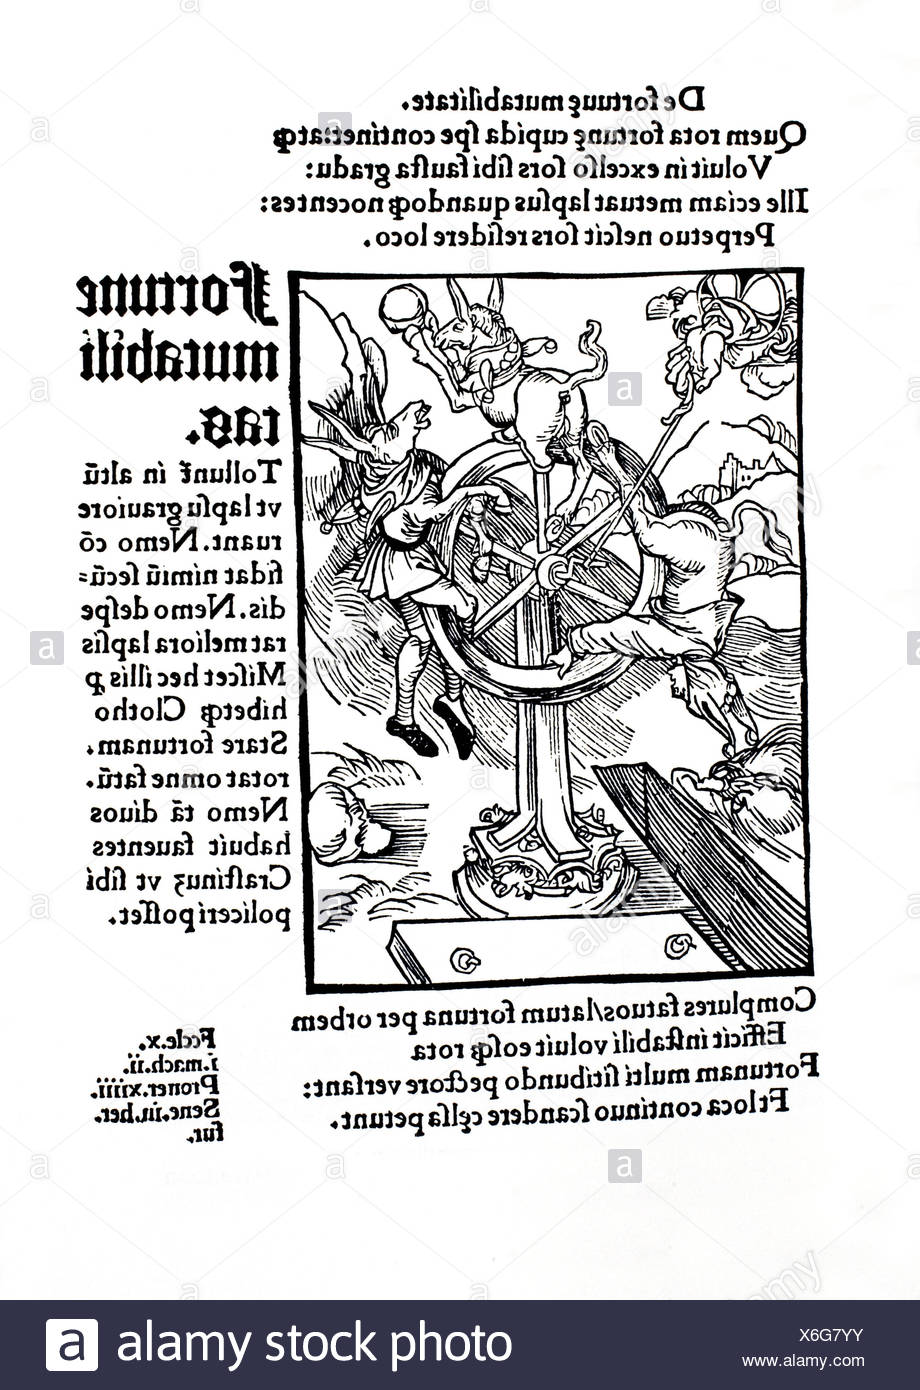 The wheel of the Fortune, turned by the Divine Providence. ´The Ship of Fools´ by Sebastien Brant. Basel, 1497. - Stock Image